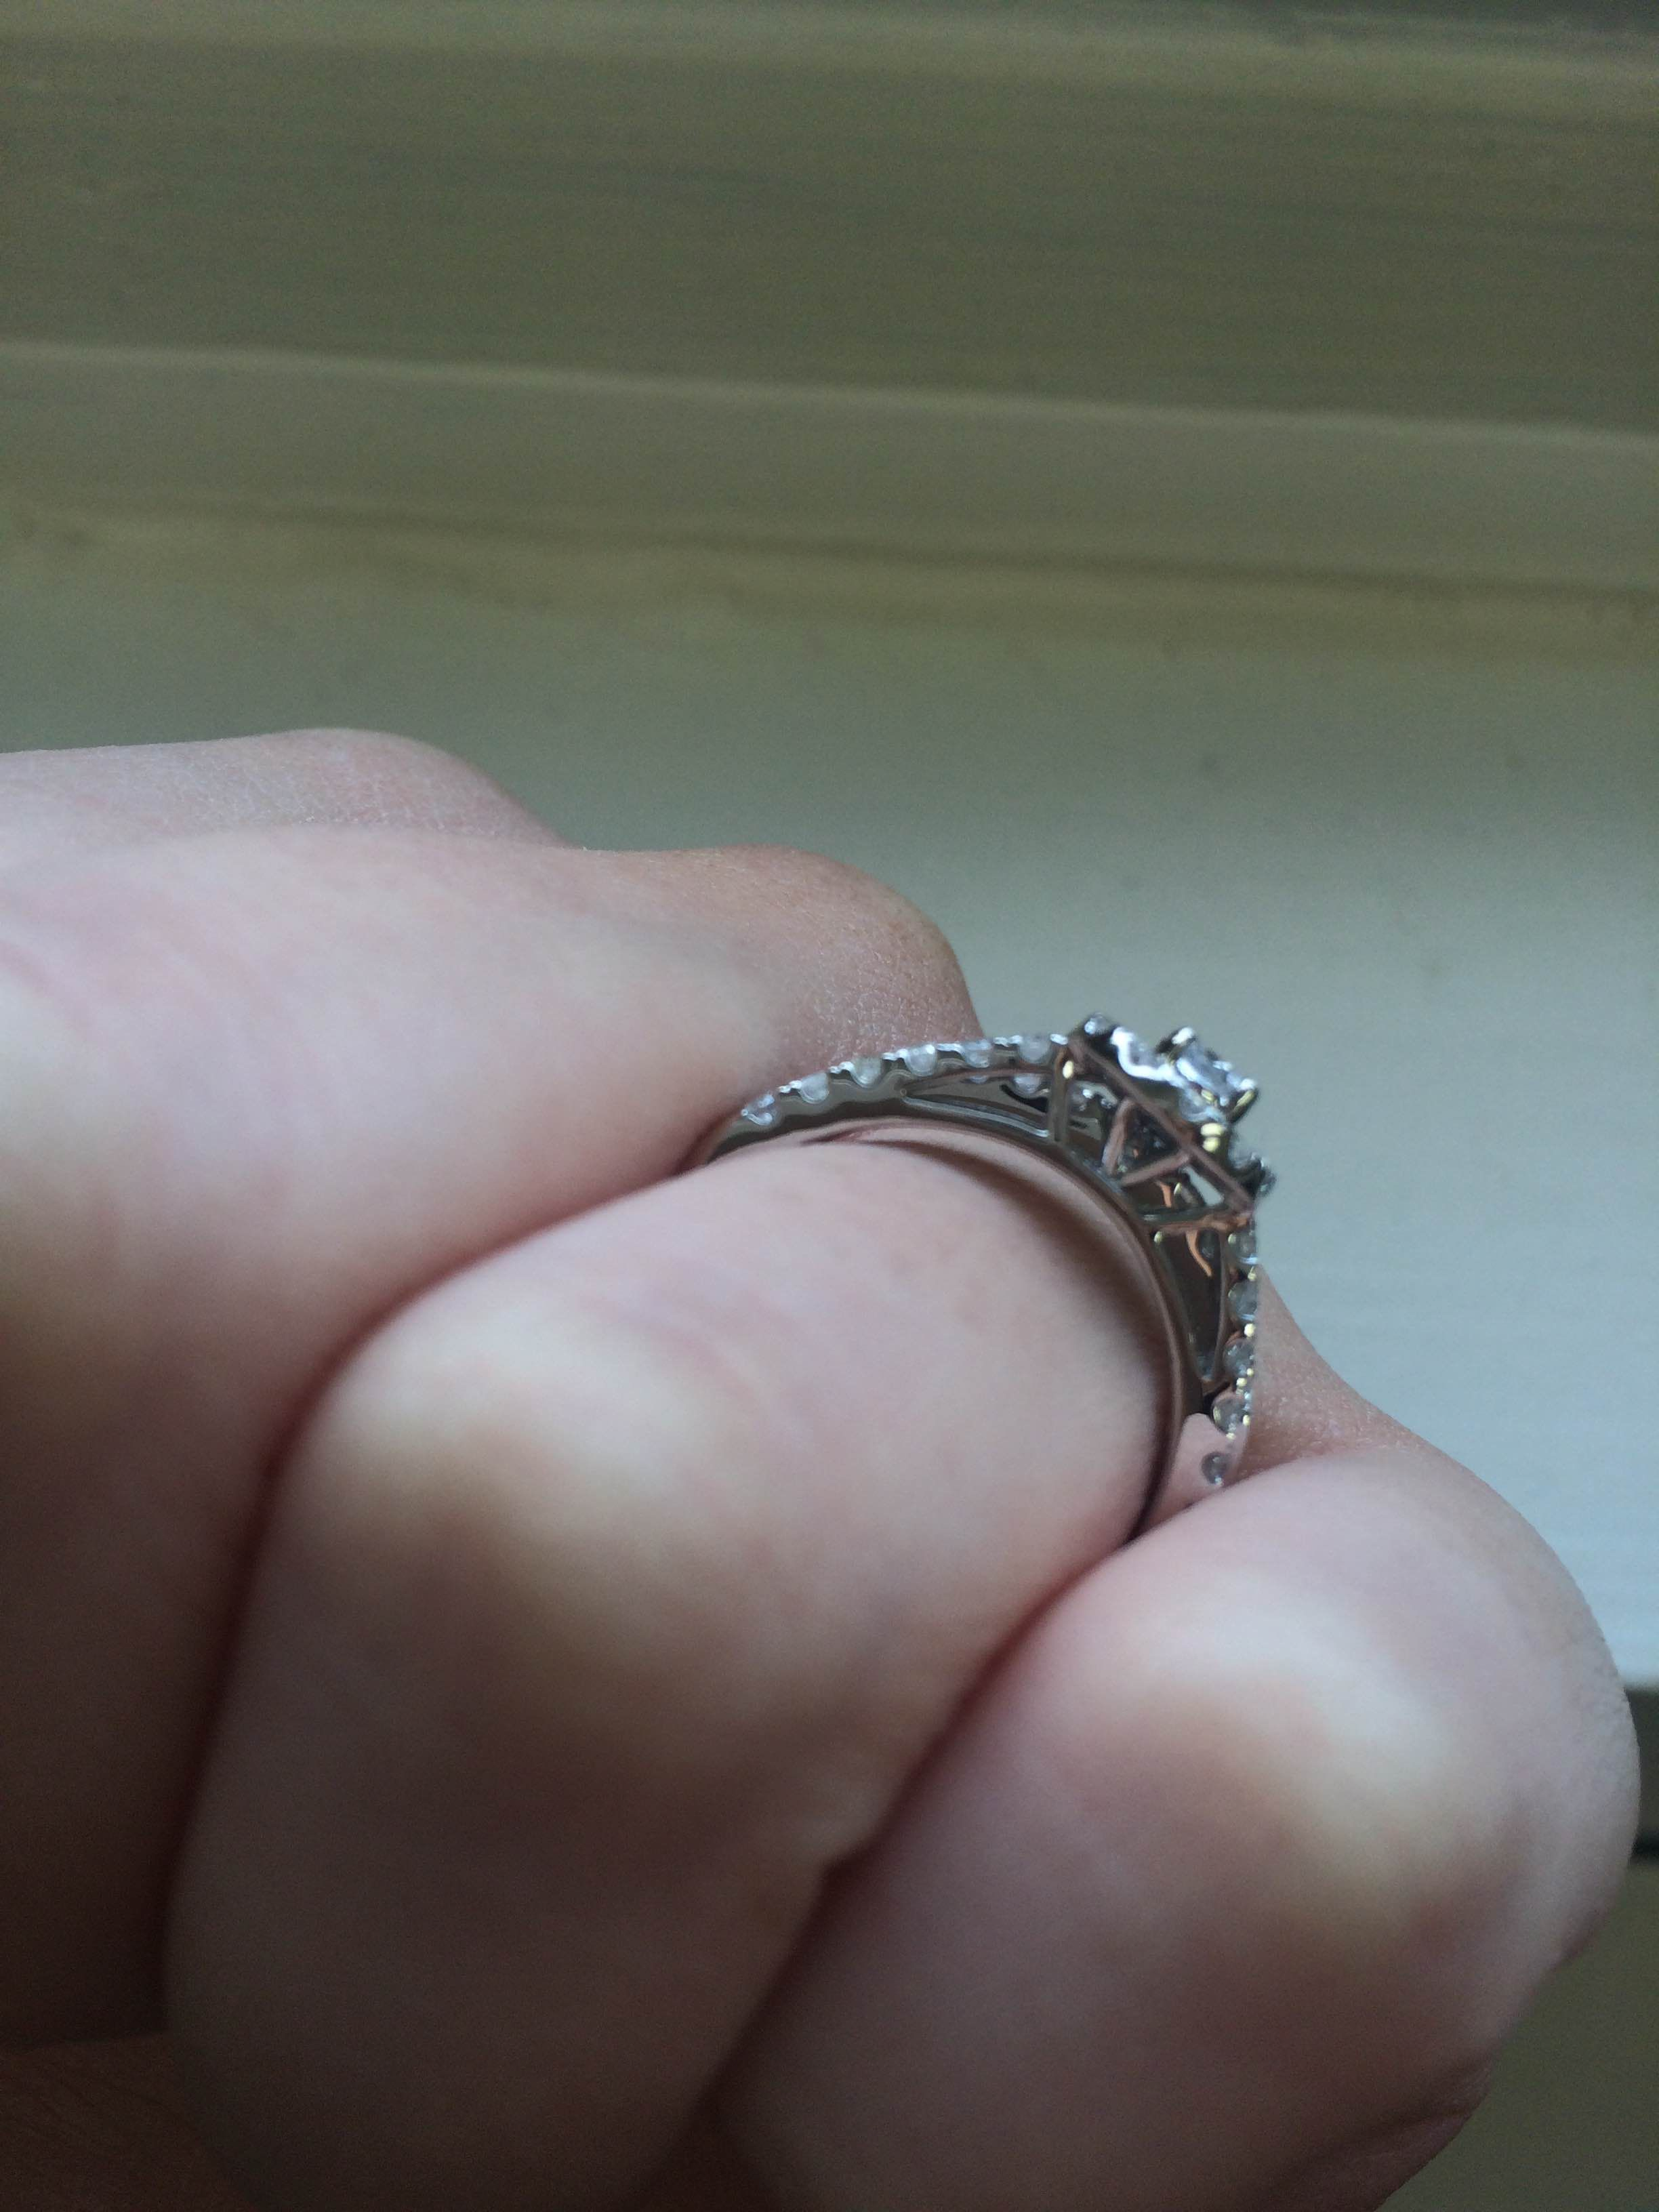 Rings on Hand Engagement Ring BT535WE Wedding ring